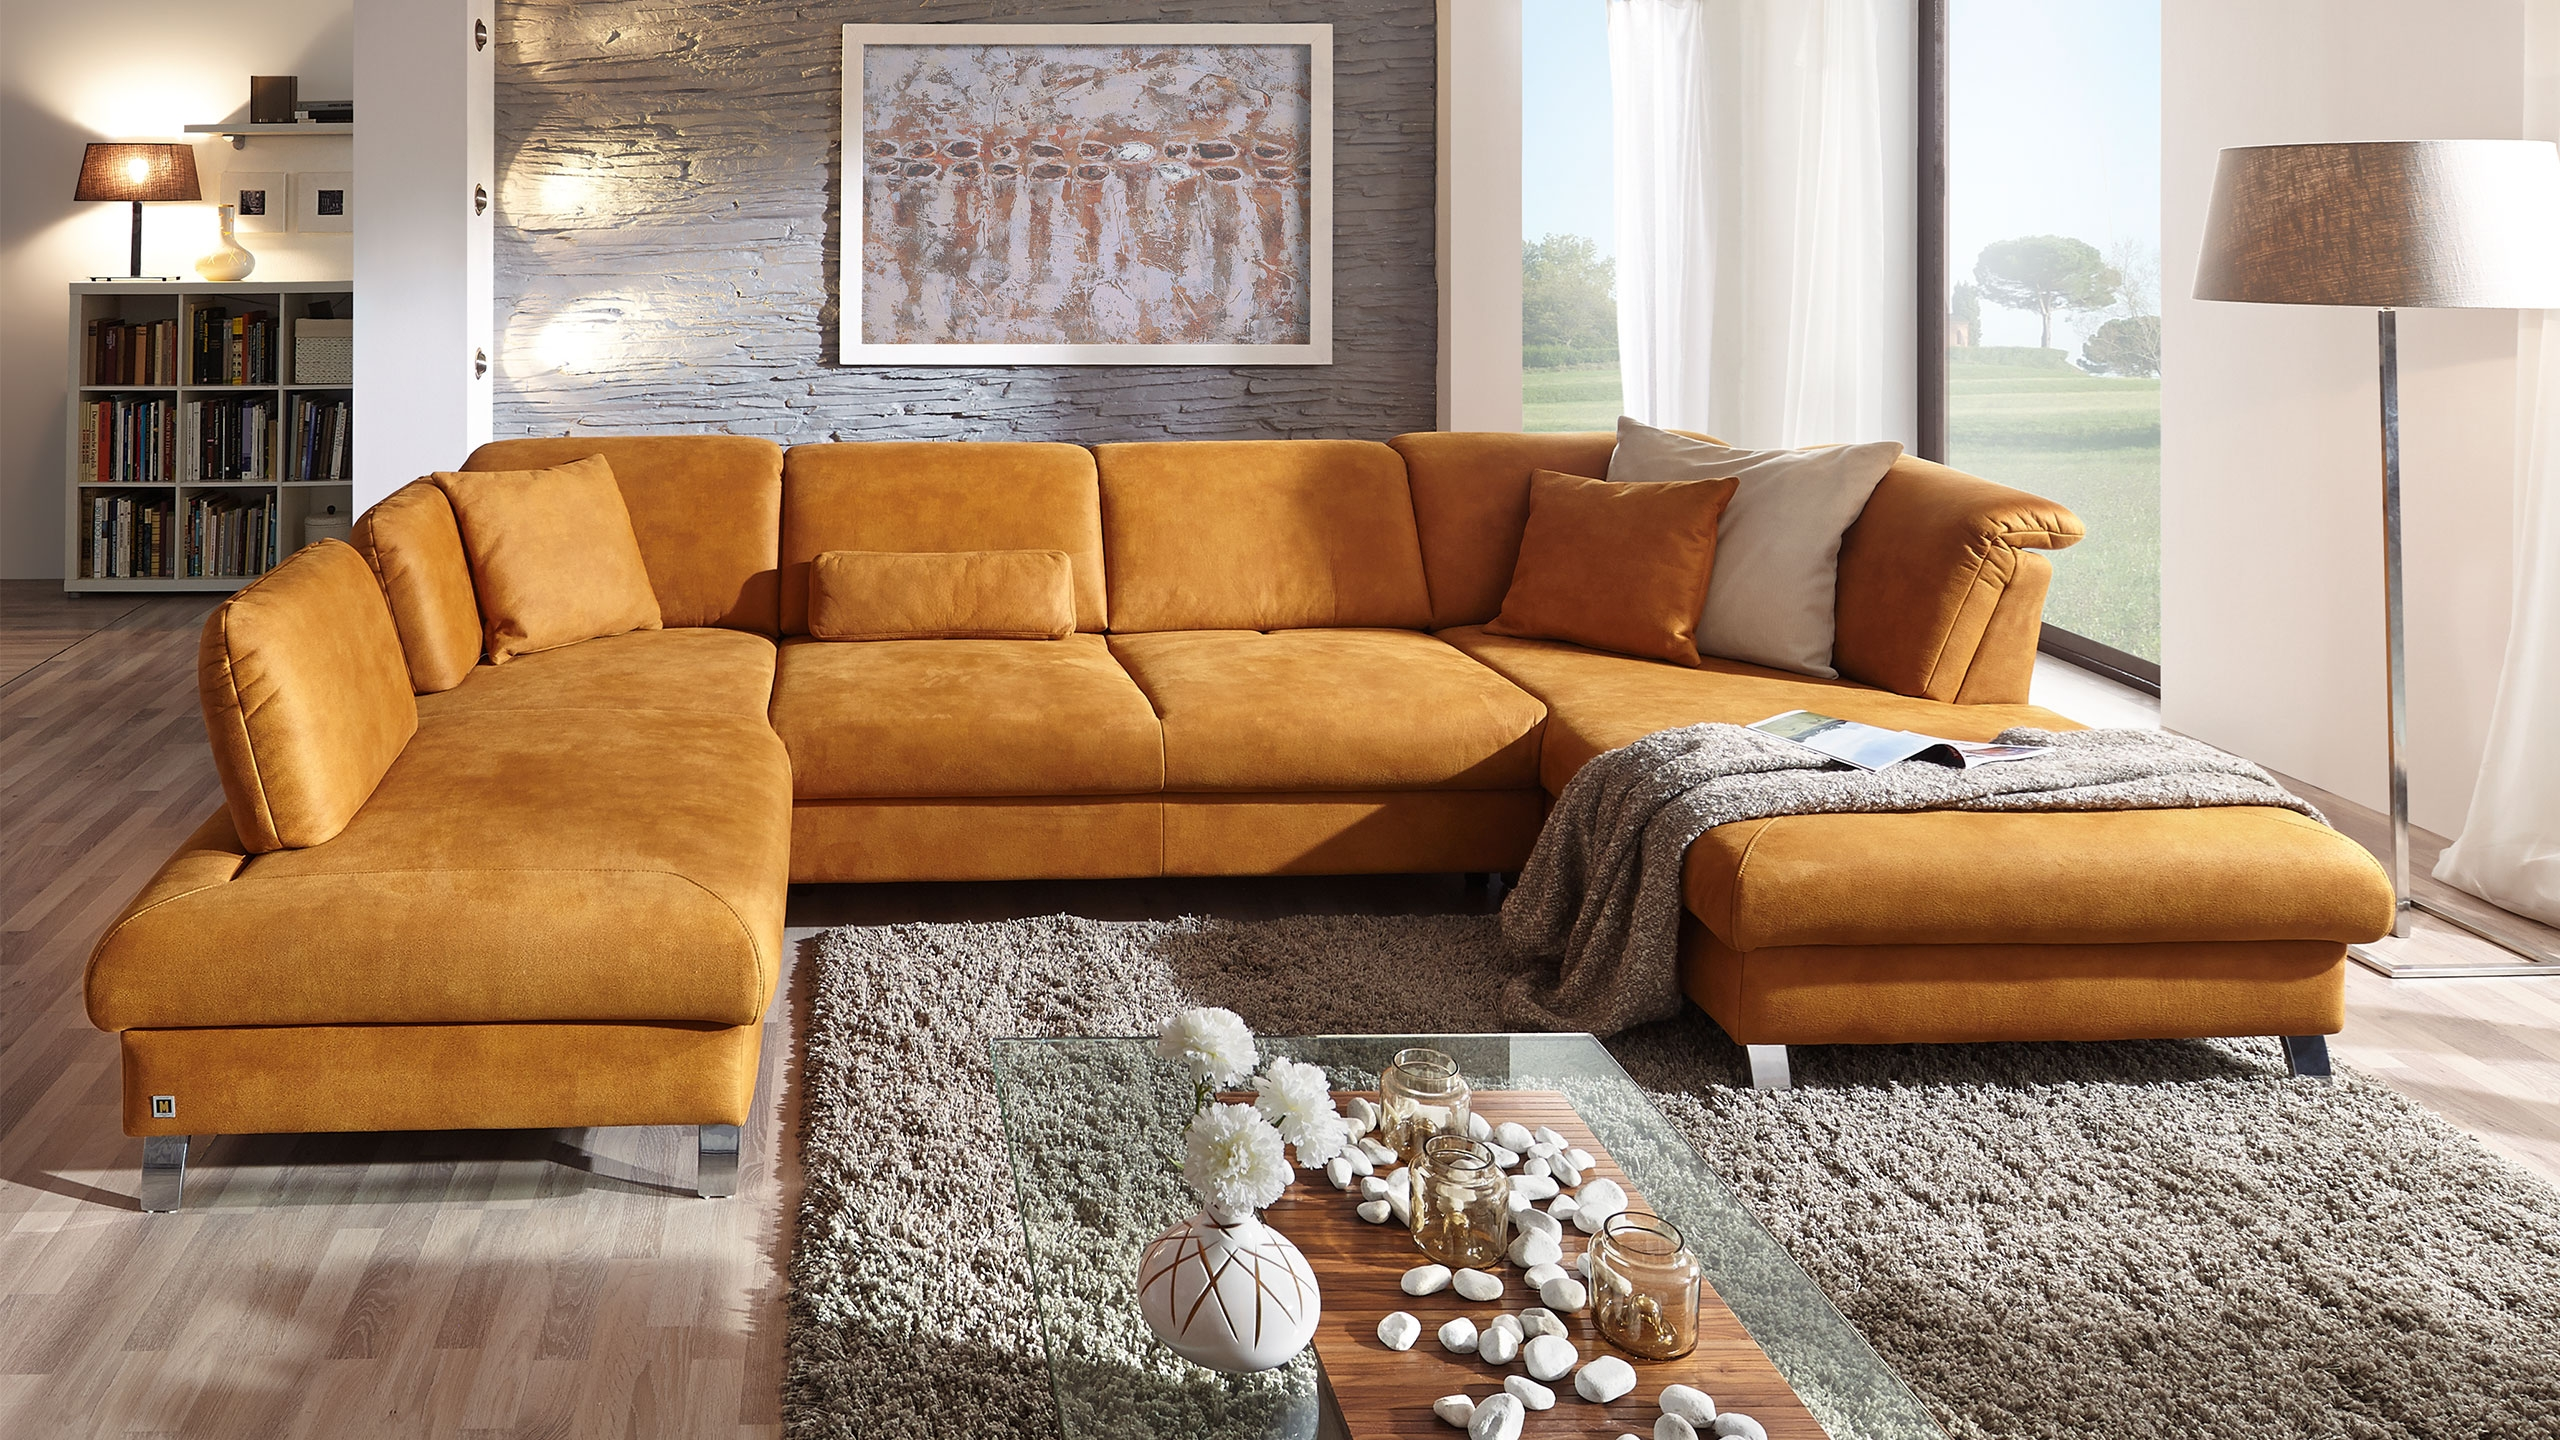 Single Wohnlandschaft Stoff Orange